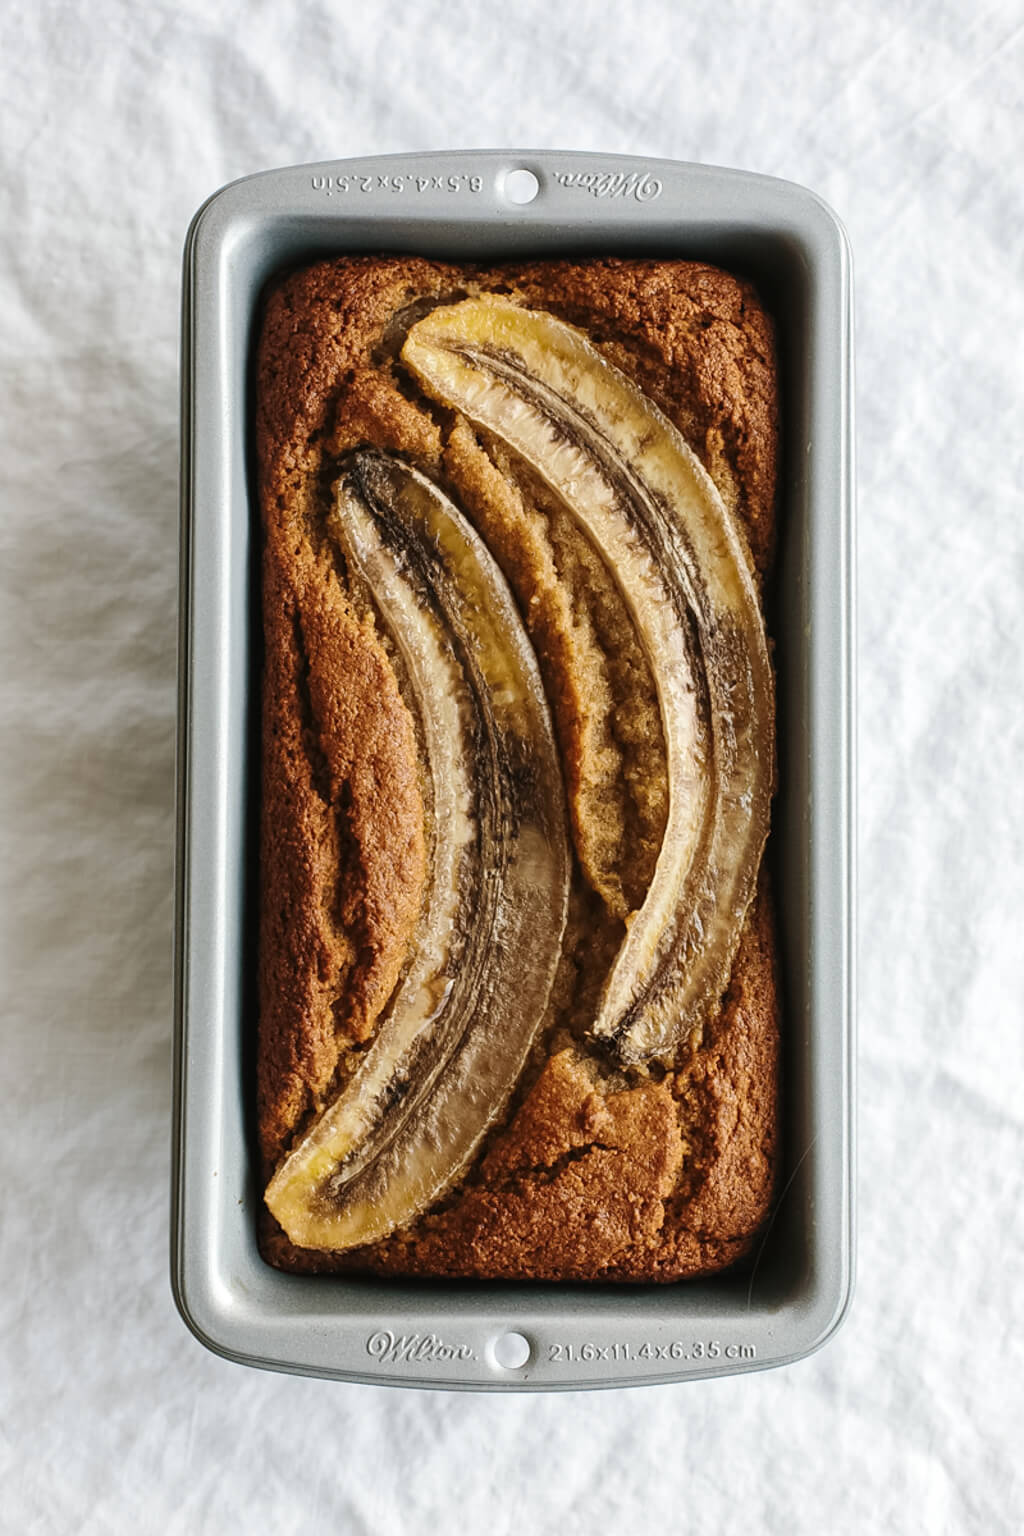 Paleo Banana Bread is super moist, delicious and easy to make. It's gluten-free, grain-free and dairy-free and the perfect healthy quick bread recipe.